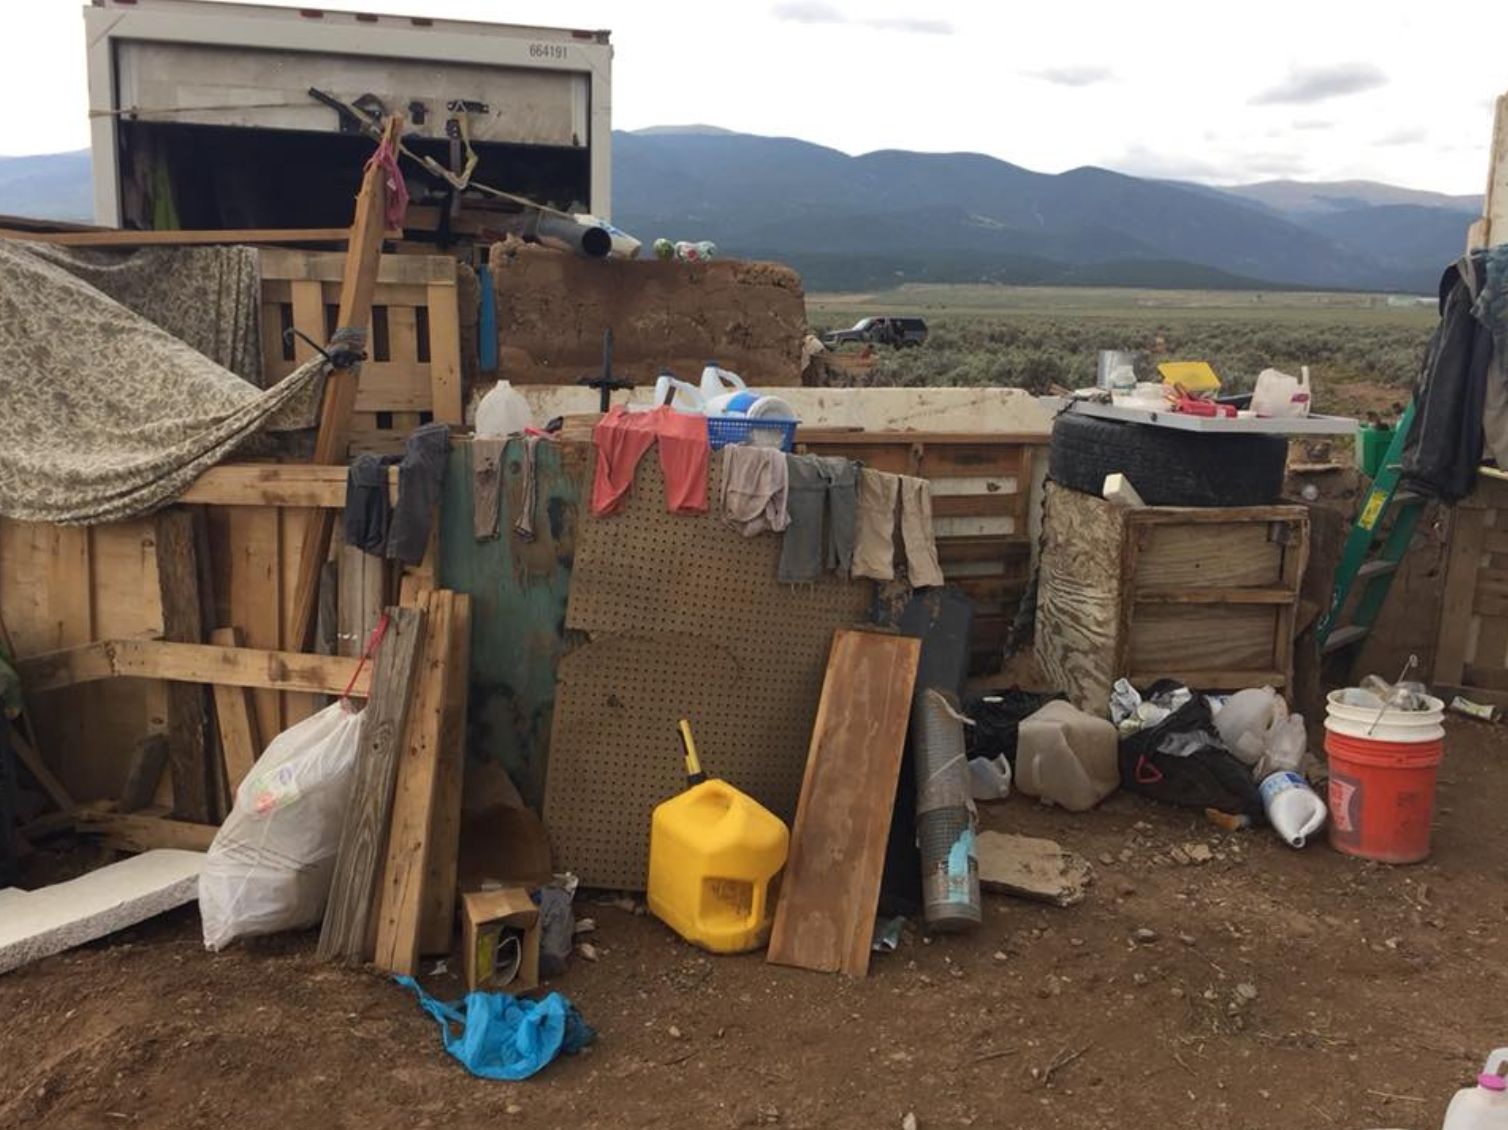 Eleven children have been taken into protection custody after being found in squalid conditions in New